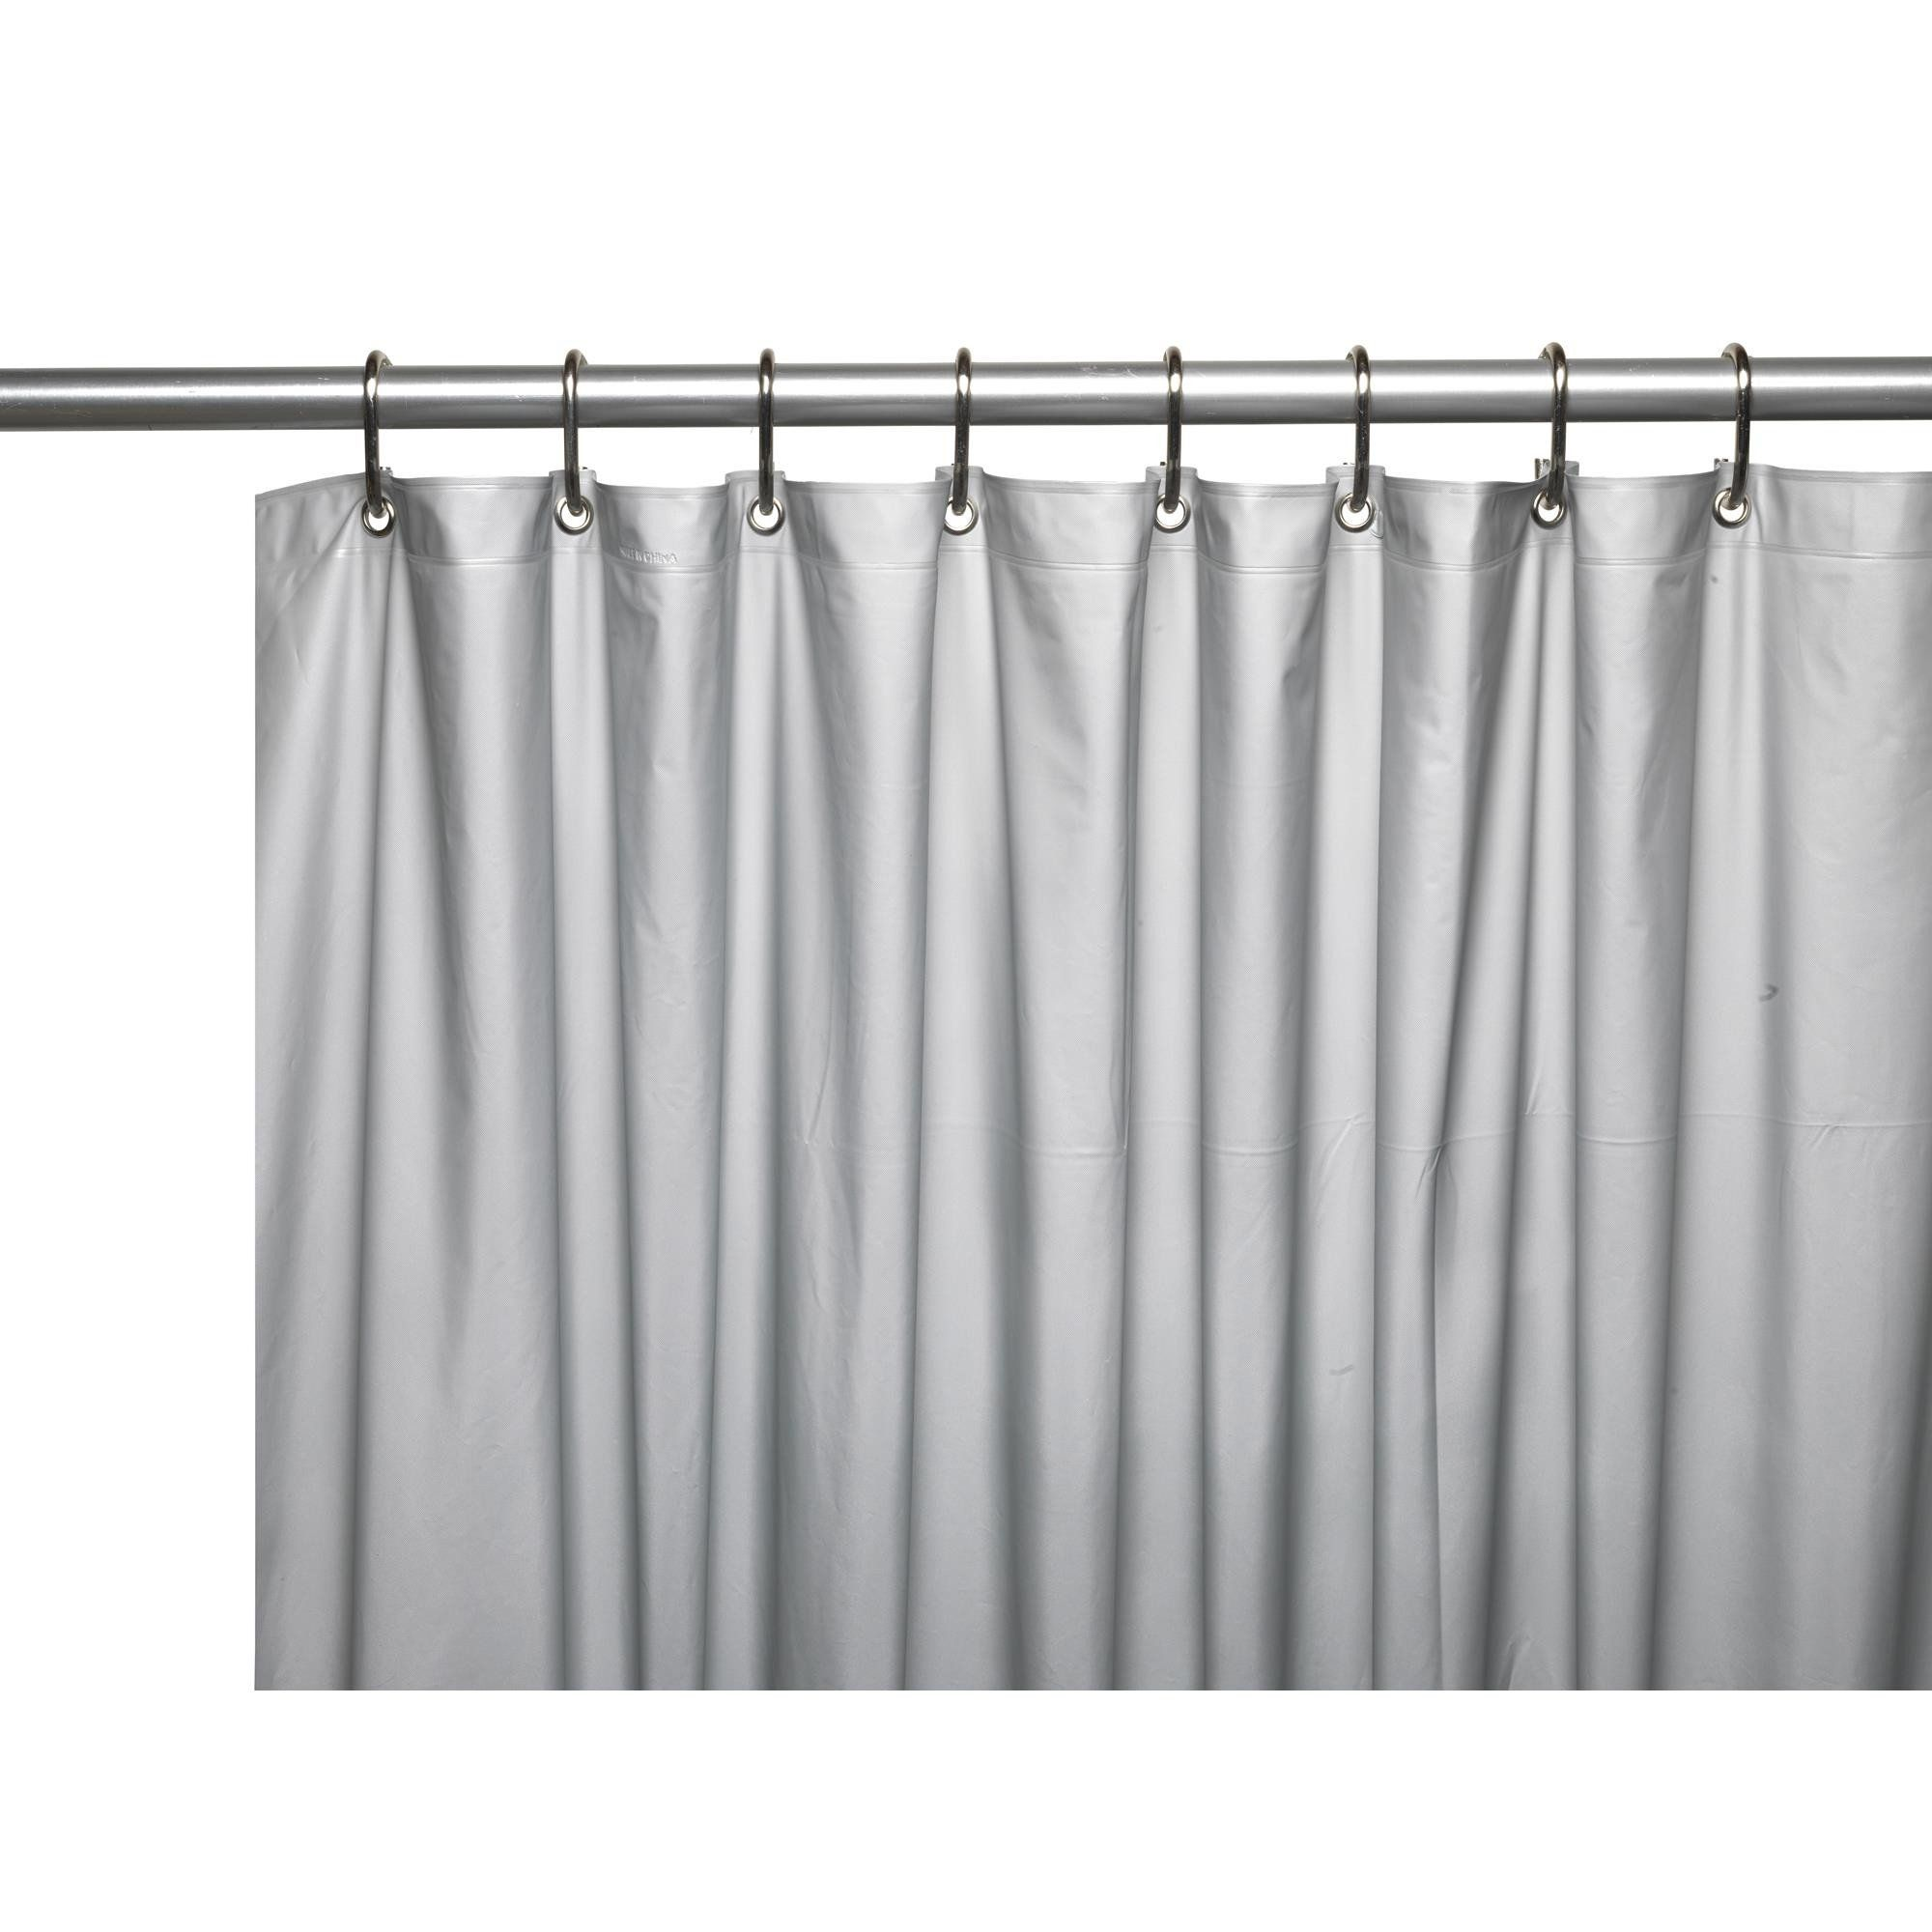 Carnation Home Hotel Collection, 8 Gauge Vinyl Shower Curtain Liner W/  Weighted Magnets And Metal Grommets In Silver